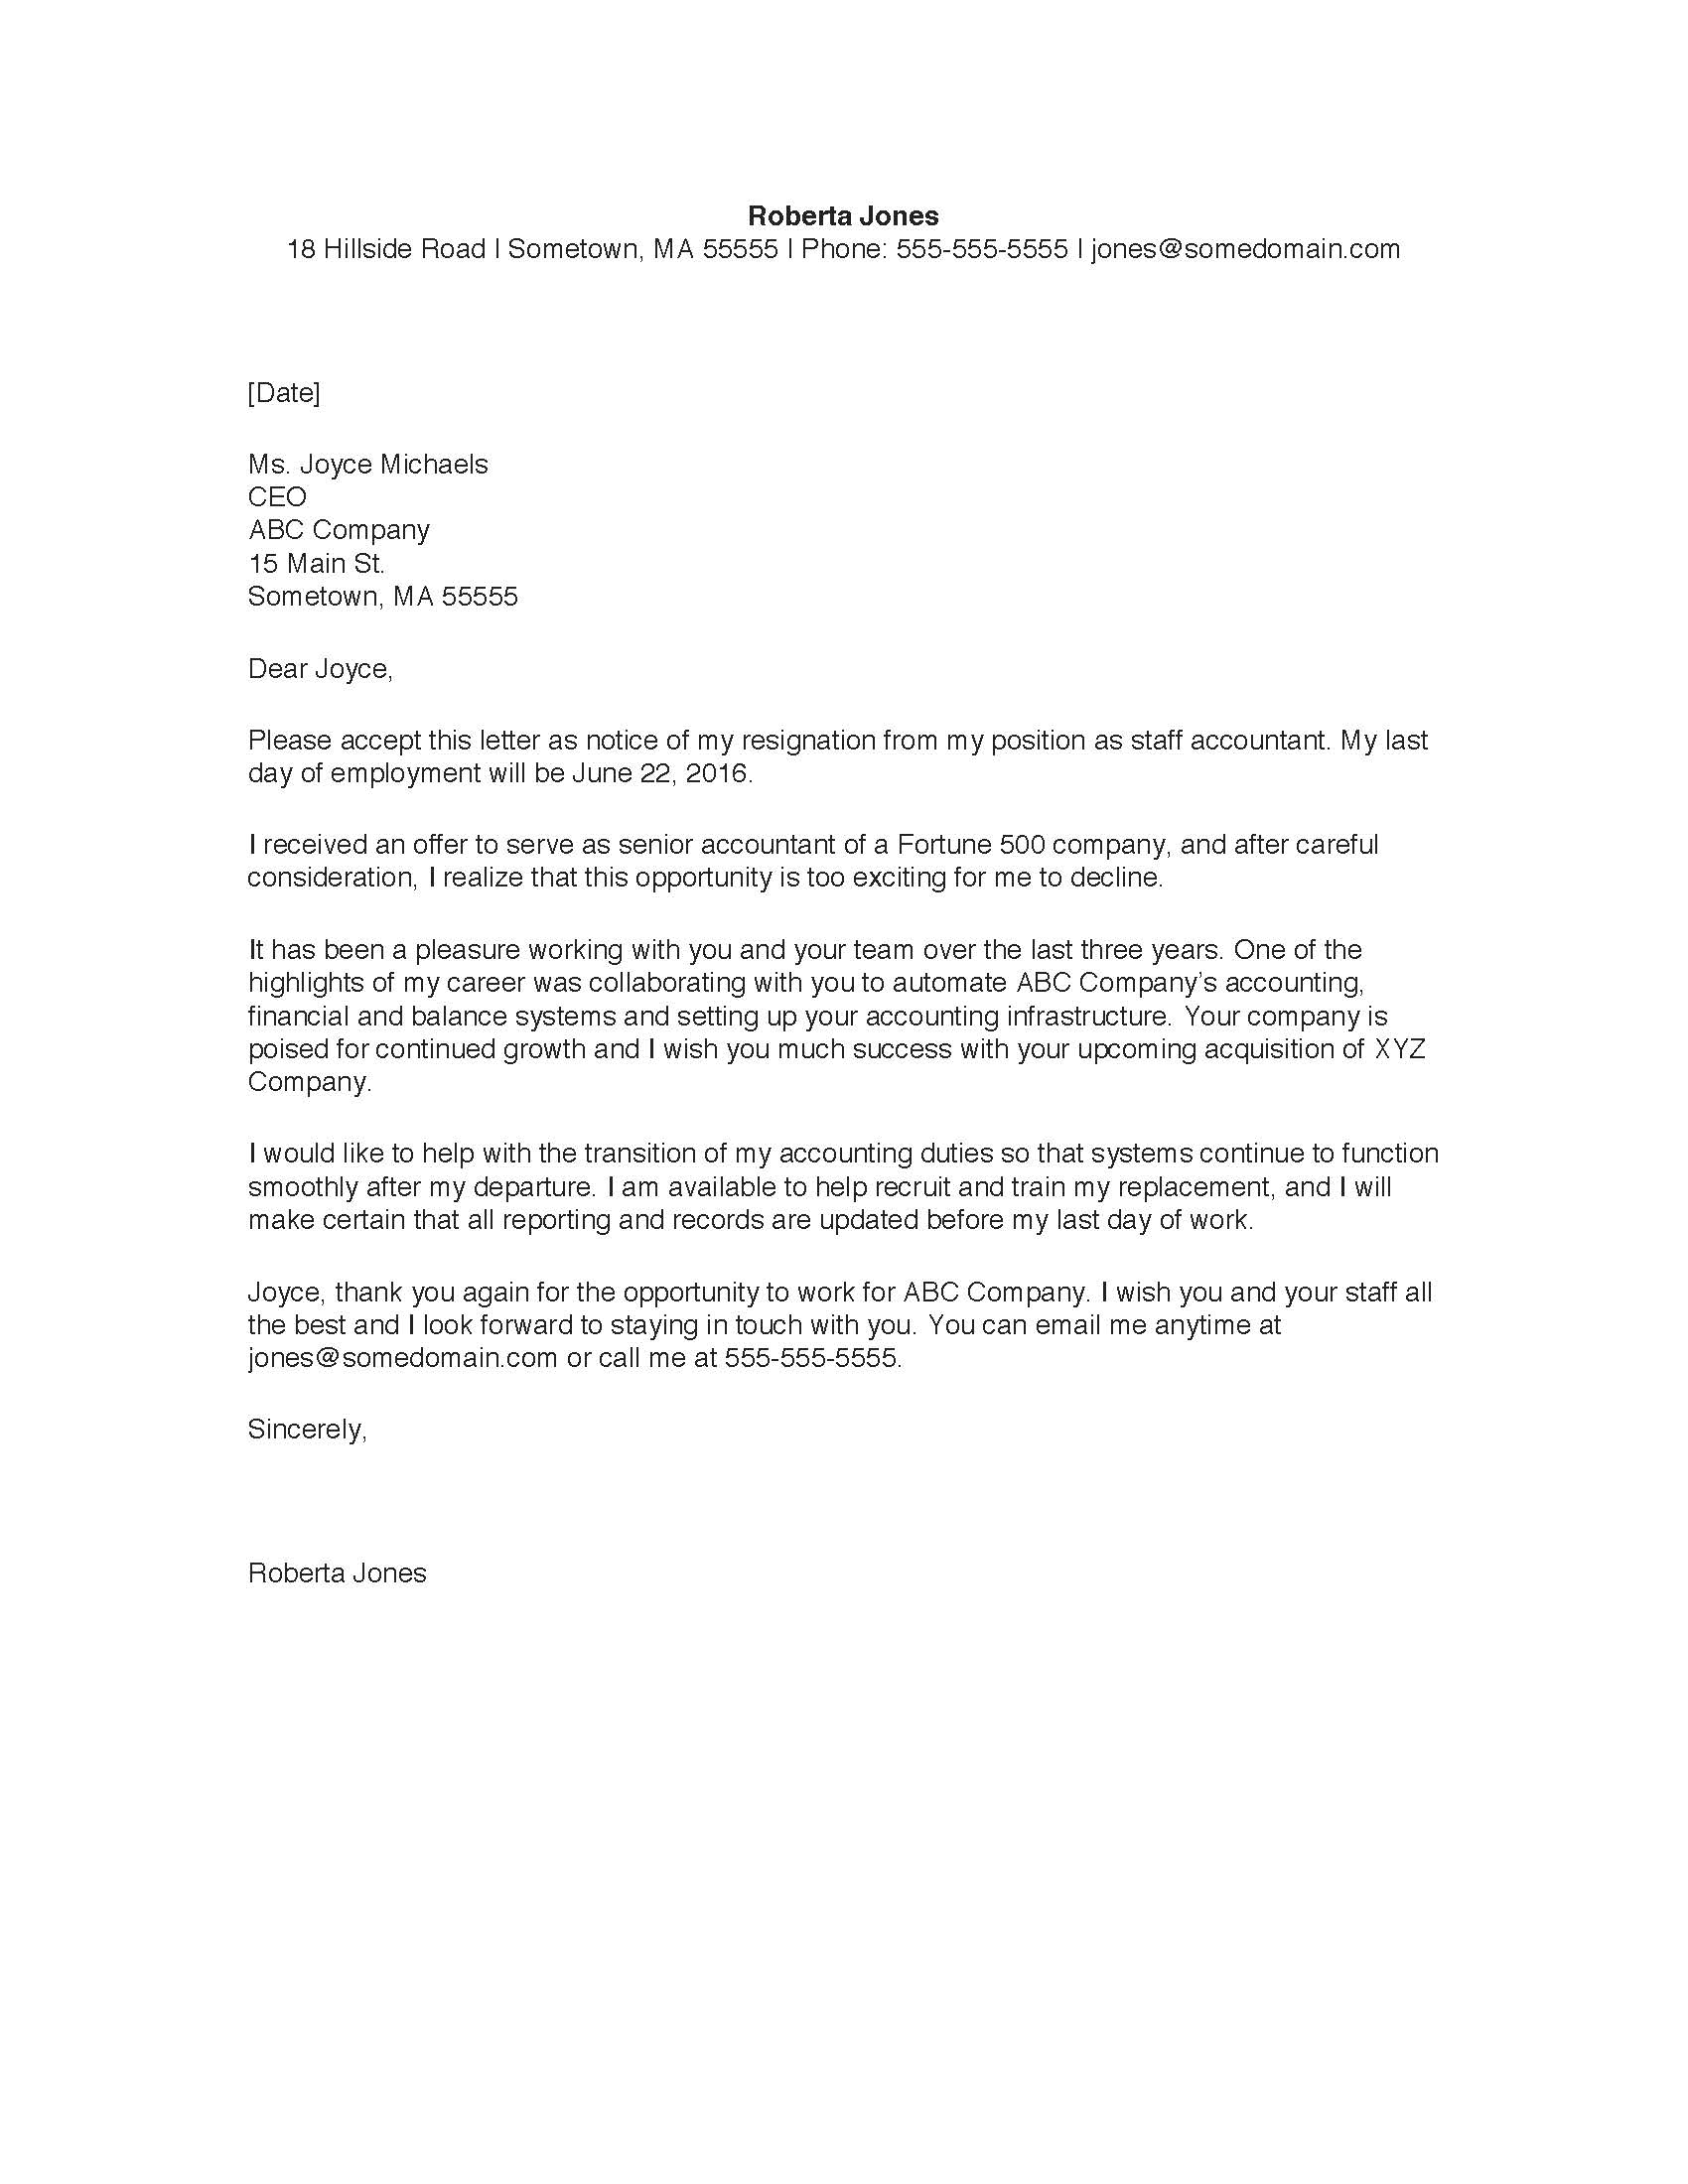 Sample resignation letter template mersnoforum sample resignation letter template spiritdancerdesigns